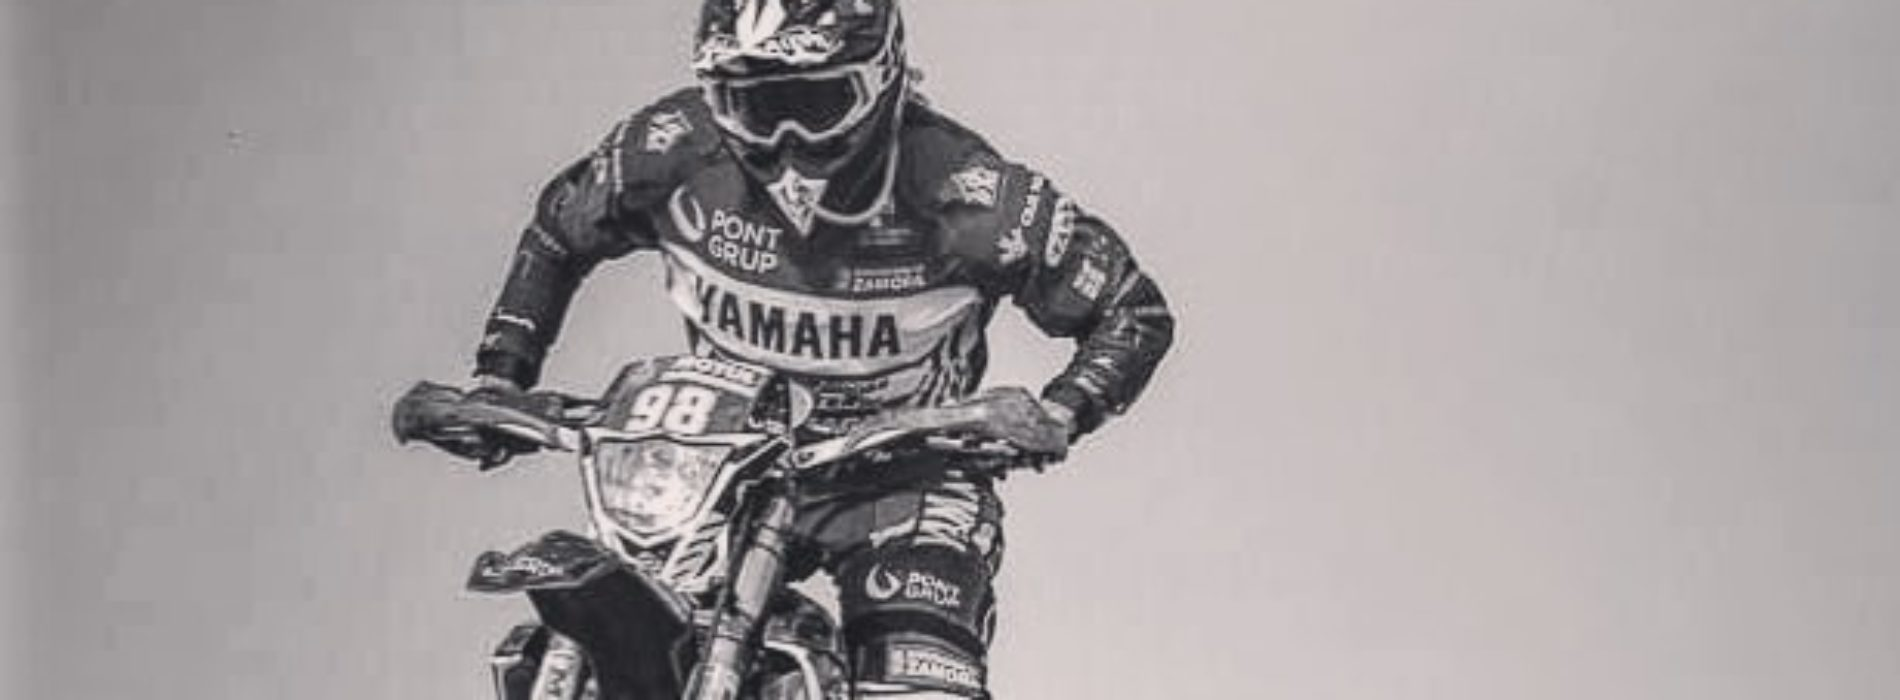 Sara Garcia heads to FIM Baja World Cup Round 1 in Portugal this weekend